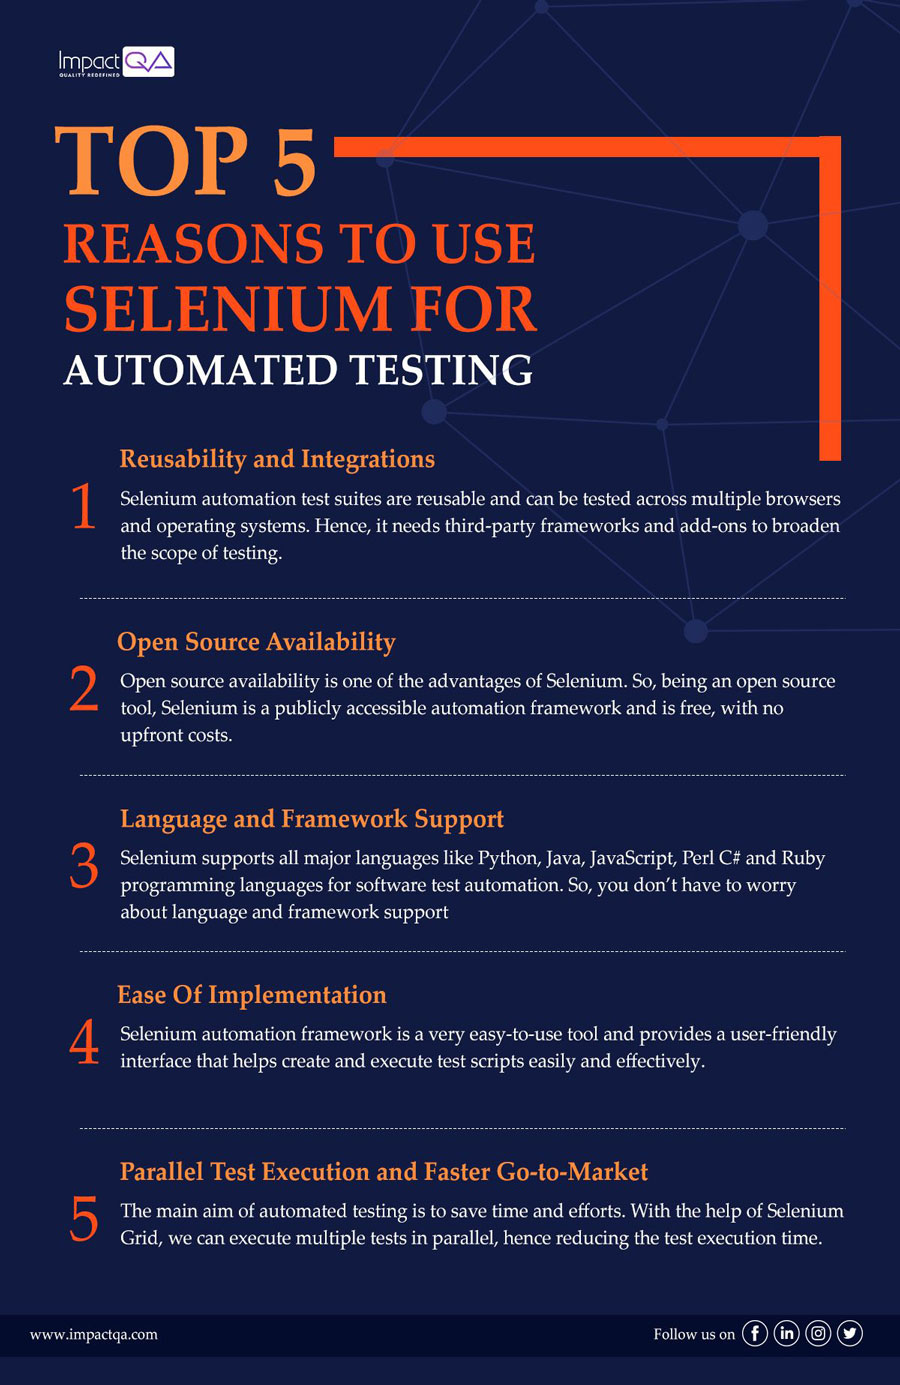 Reasons to use selenium for automated testing